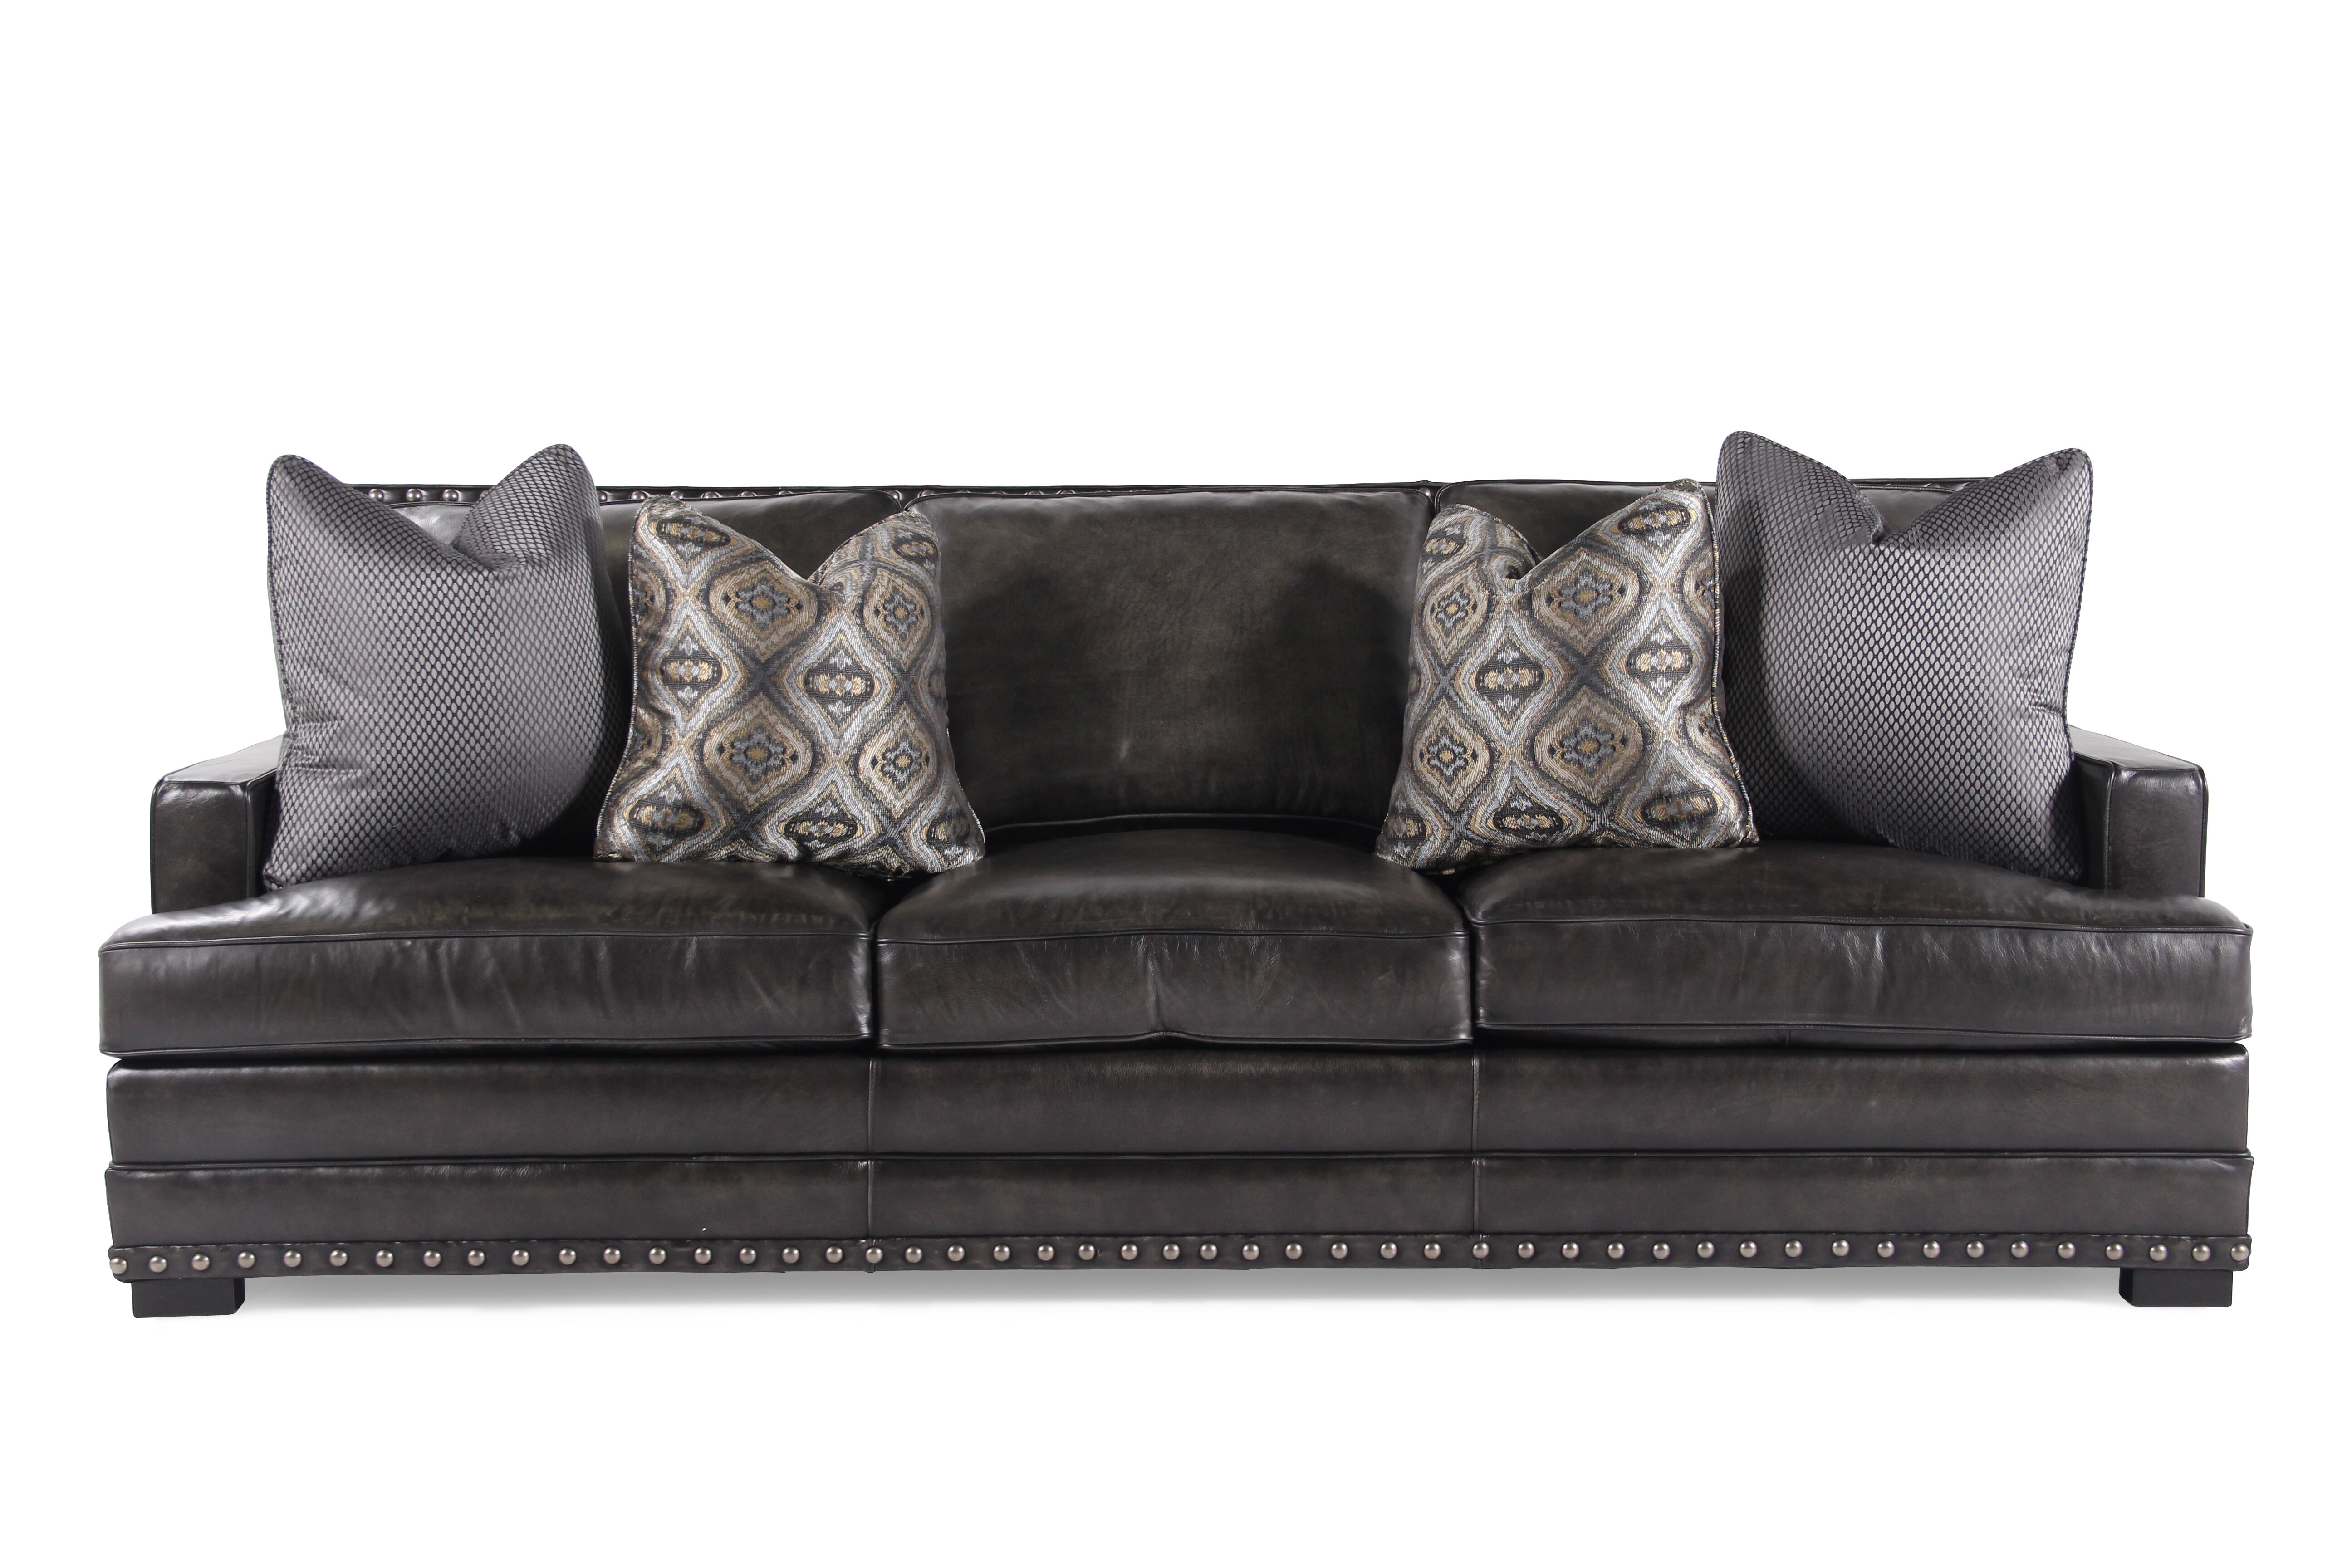 Bernhardt Cantor Graphite Leather Sofa  sc 1 st  Mathis Brothers : mathis brothers sectional sofas - Sectionals, Sofas & Couches